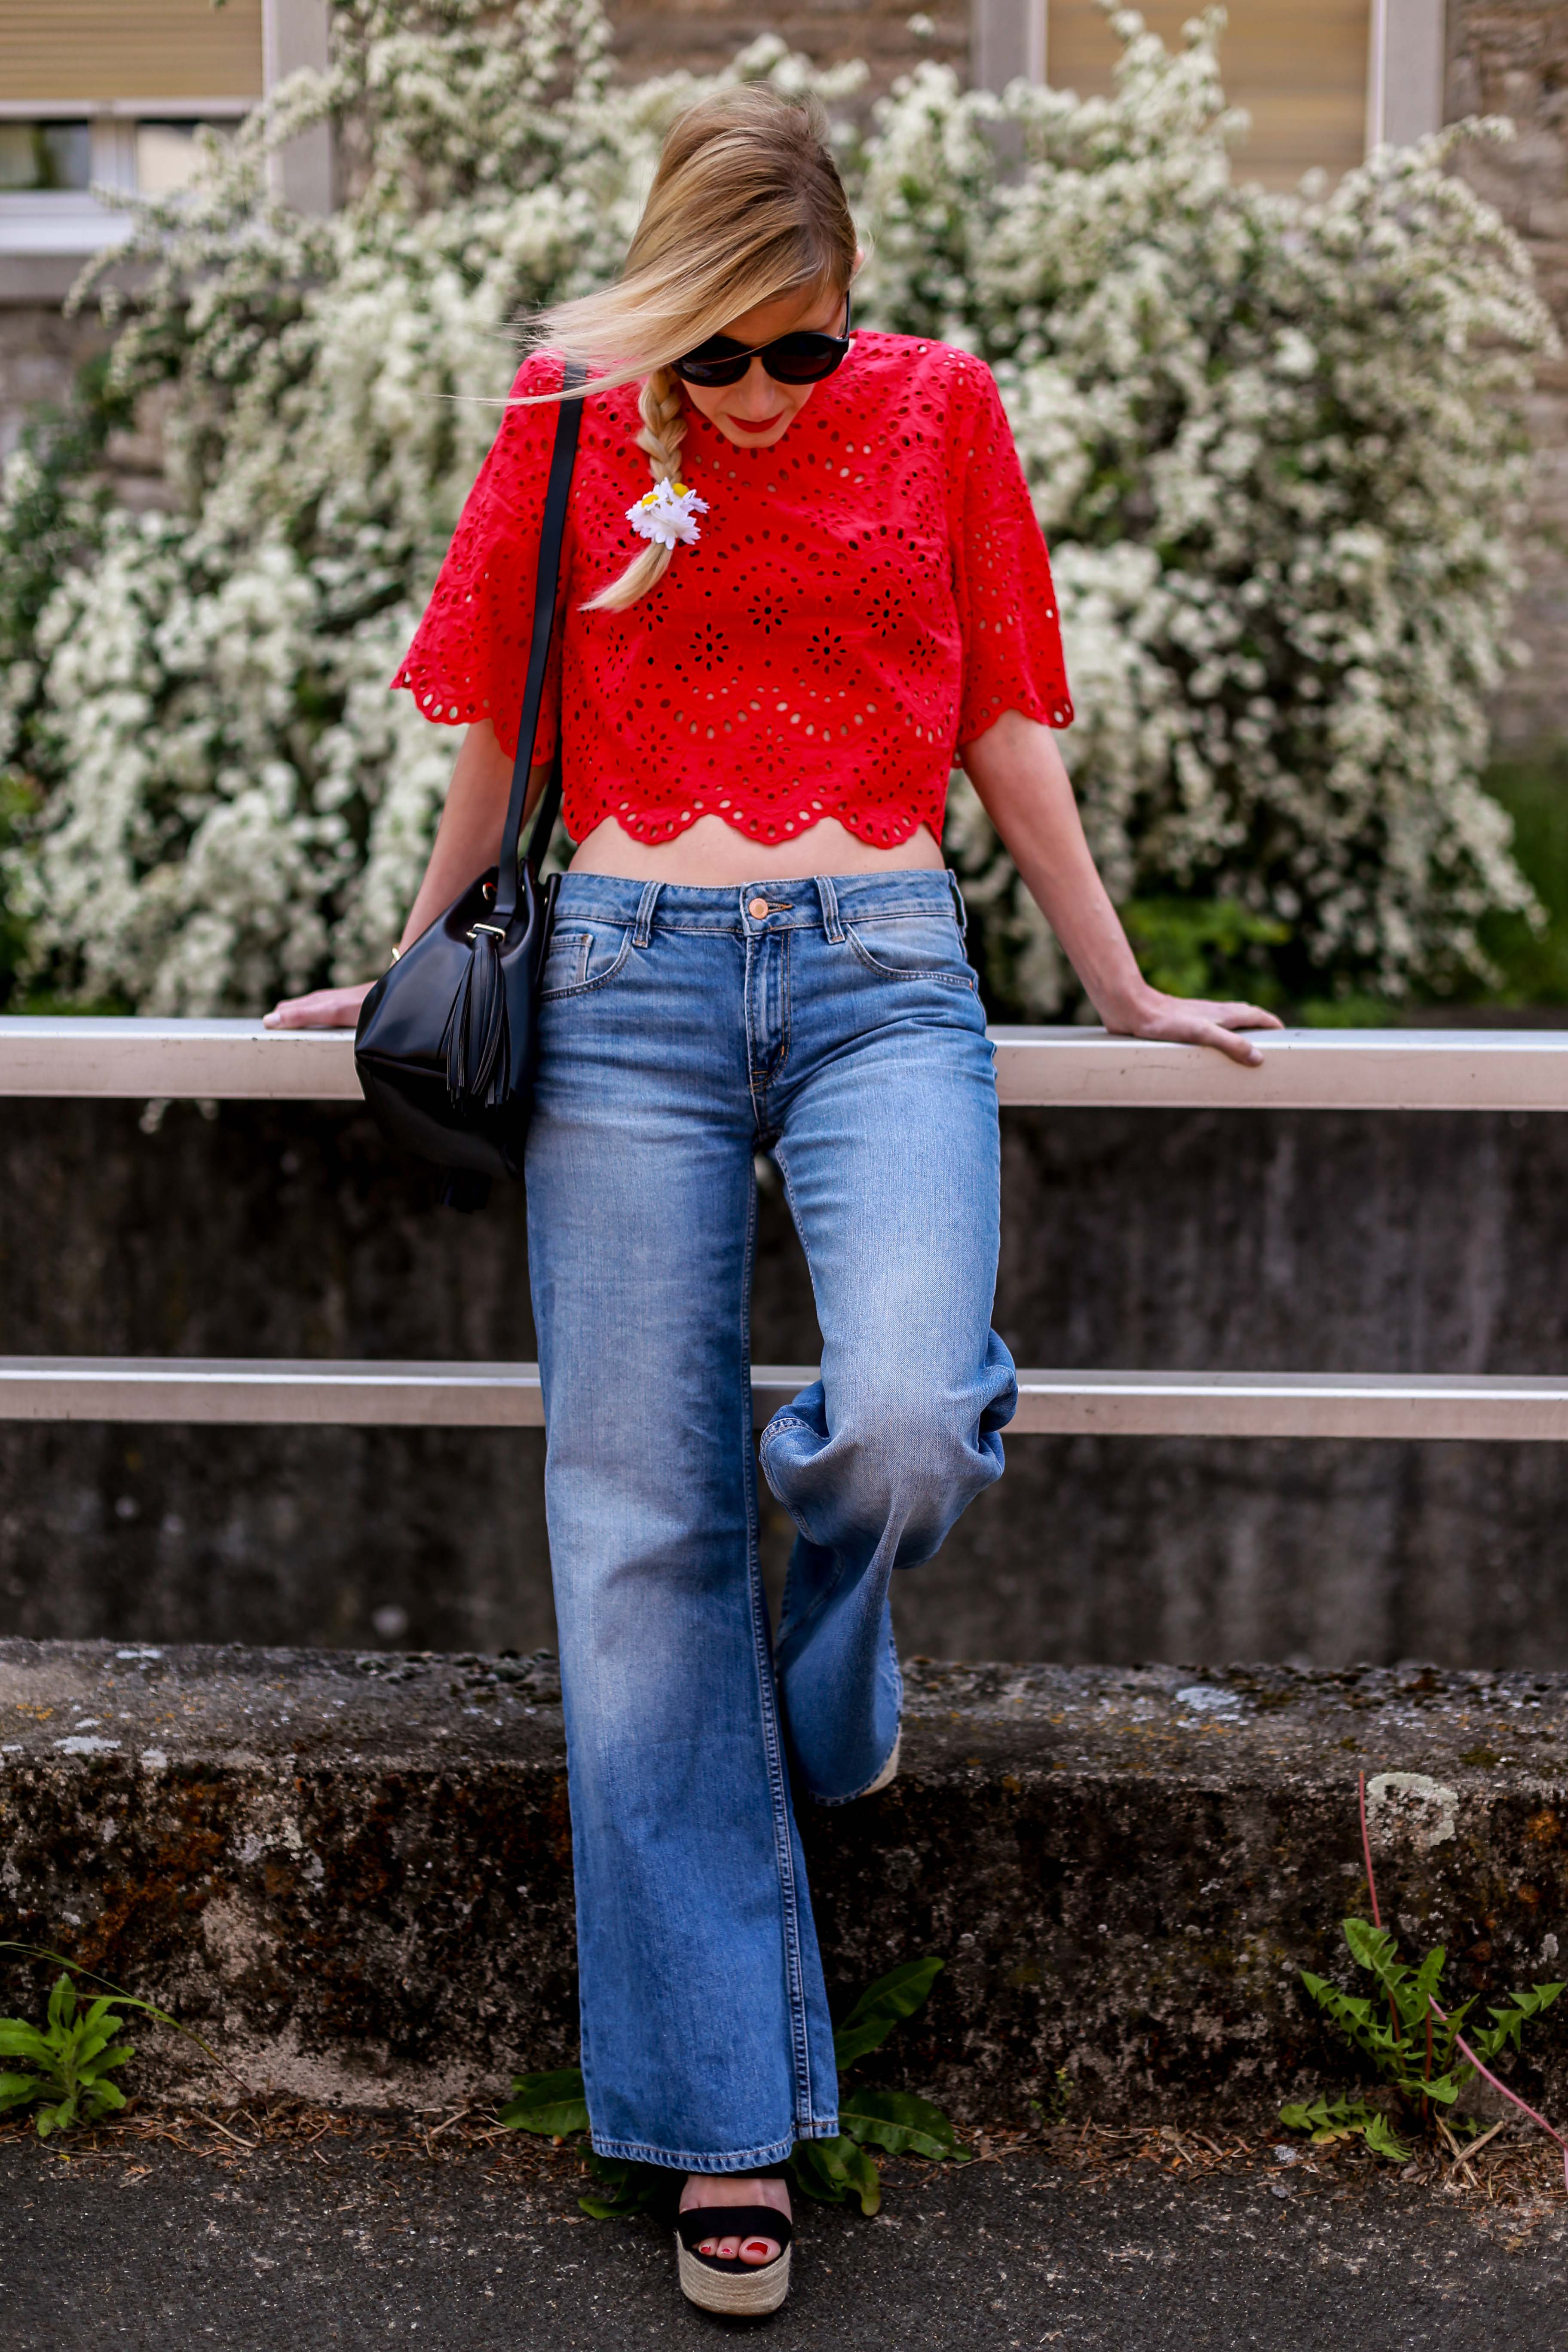 Fashion_Outfit_70ies_Vibe-20